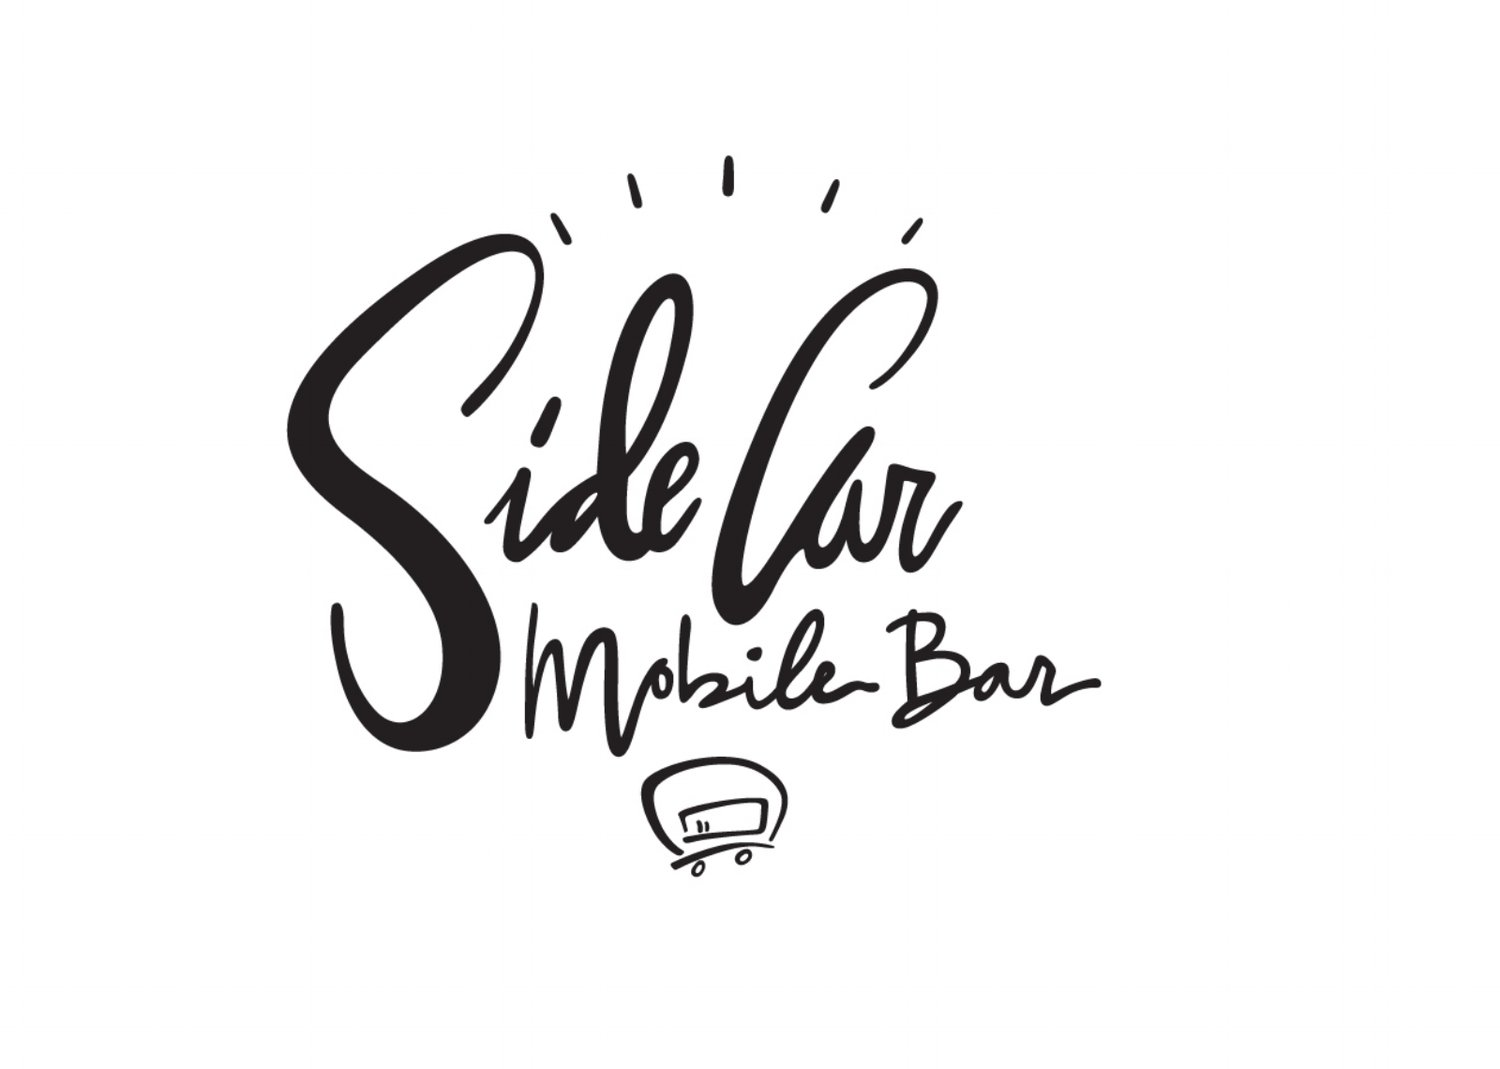 the sidecarmobilebar